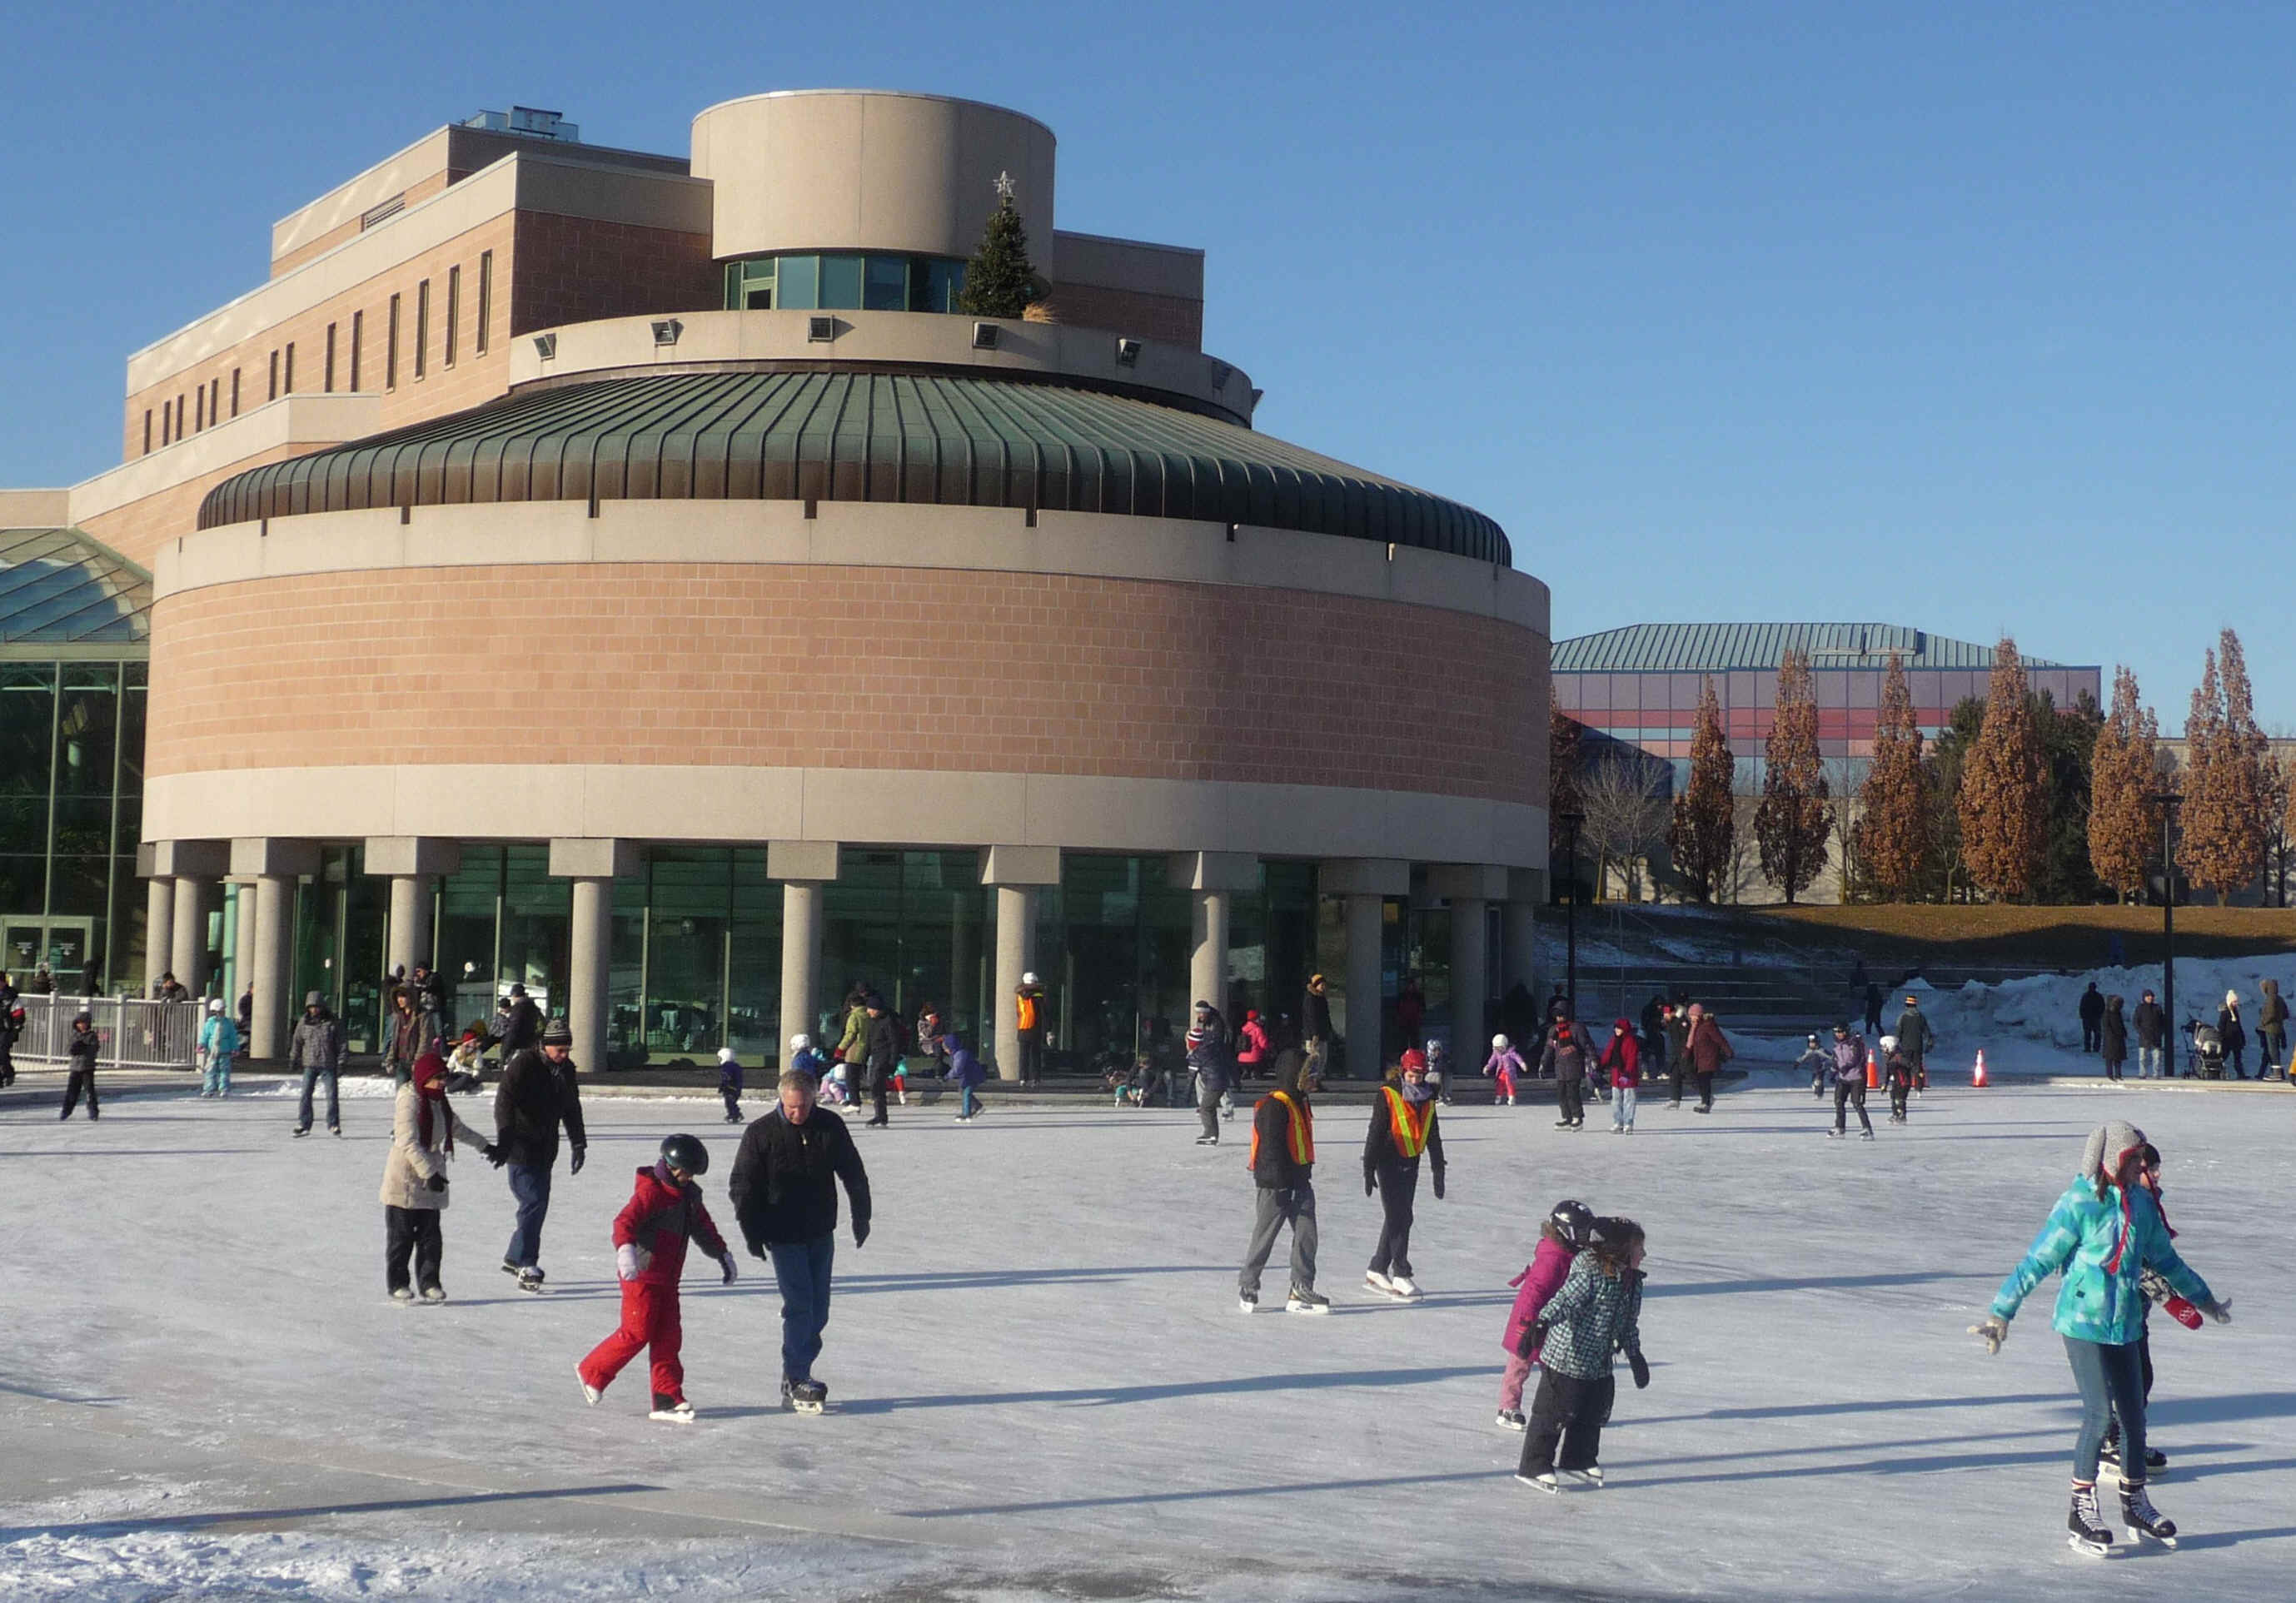 Skating at Markham Civic Centre Outdoor Artificial Skating Rink